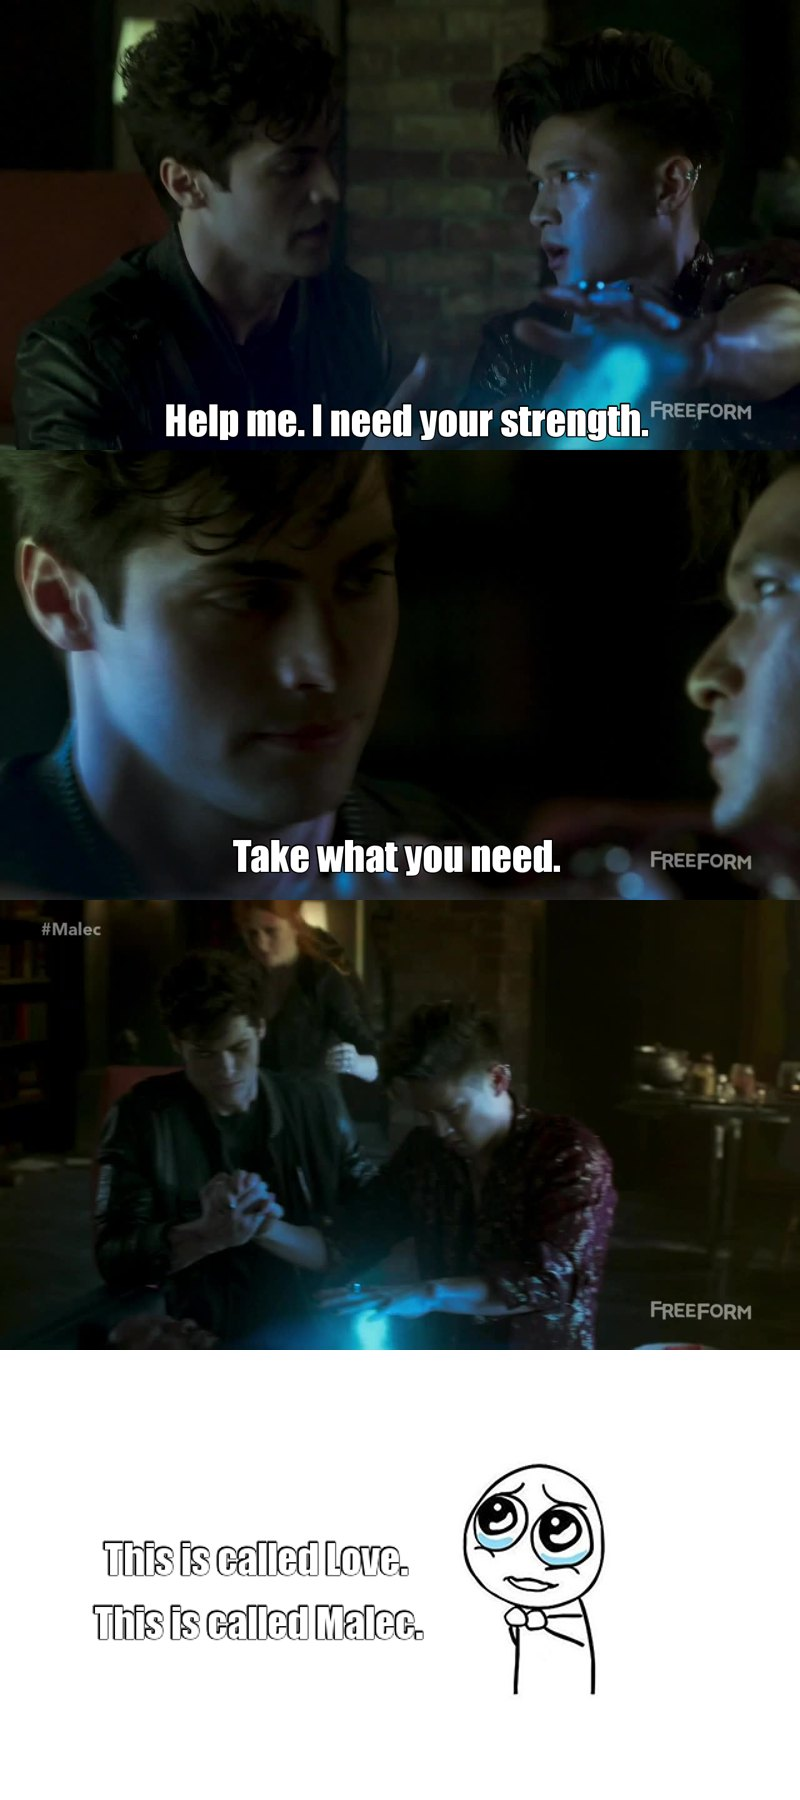 """-""""Do you remember when I needed some of your strength?"""" -""""Do you need it again now?"""" Alec said. """"Because you can have it."""" -""""I always need your strength, Alec.""""  Malec 😍😍😍"""